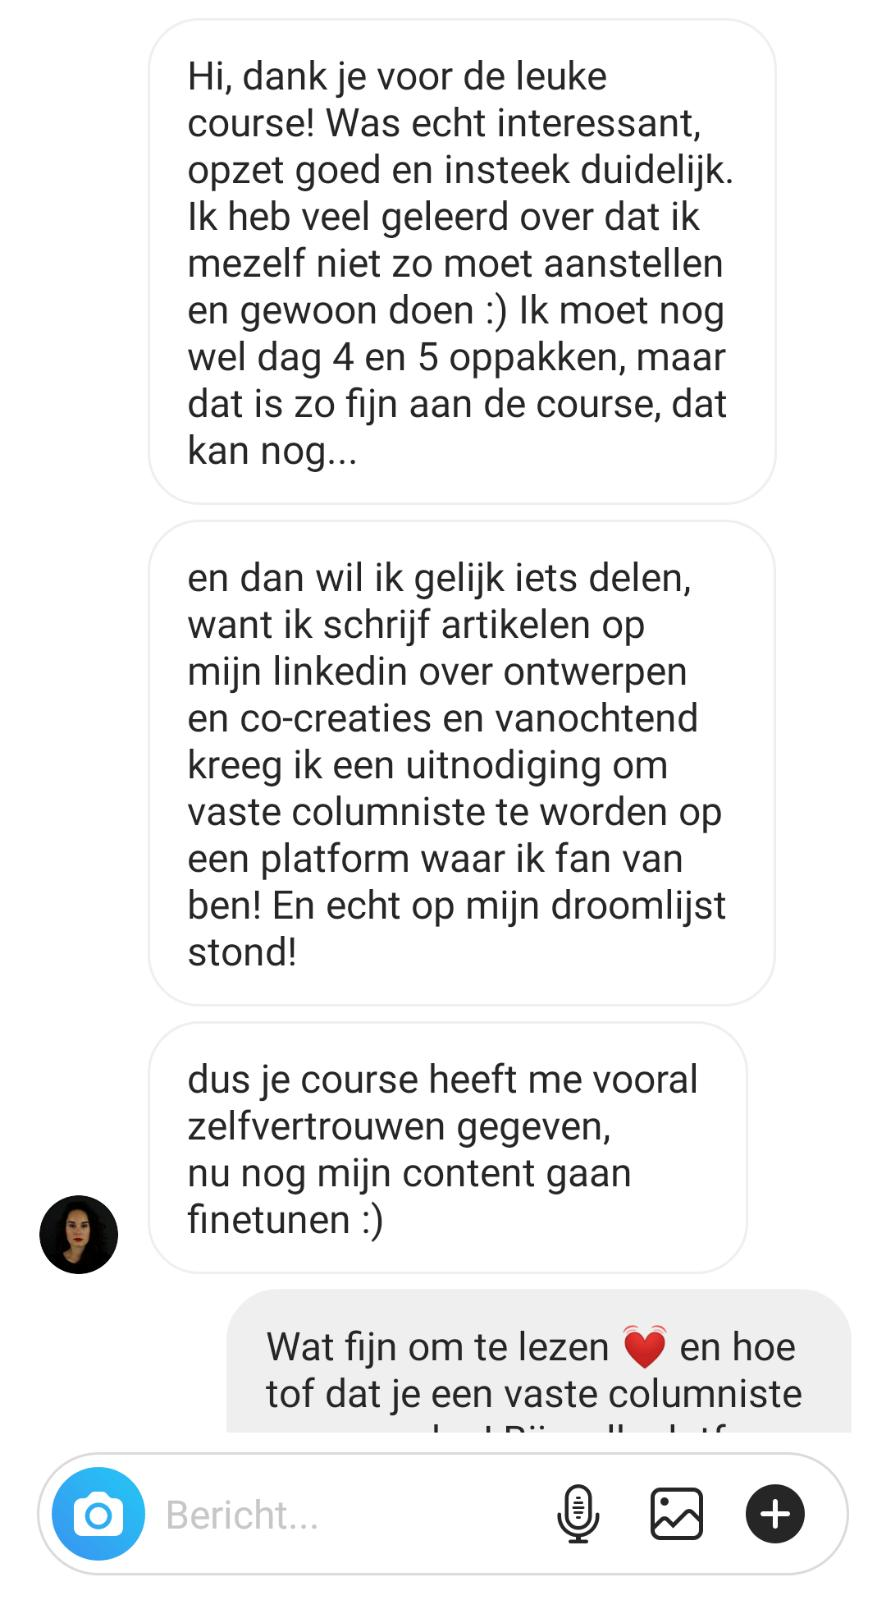 Leg in 5 dagen de basis van je contentstrategie